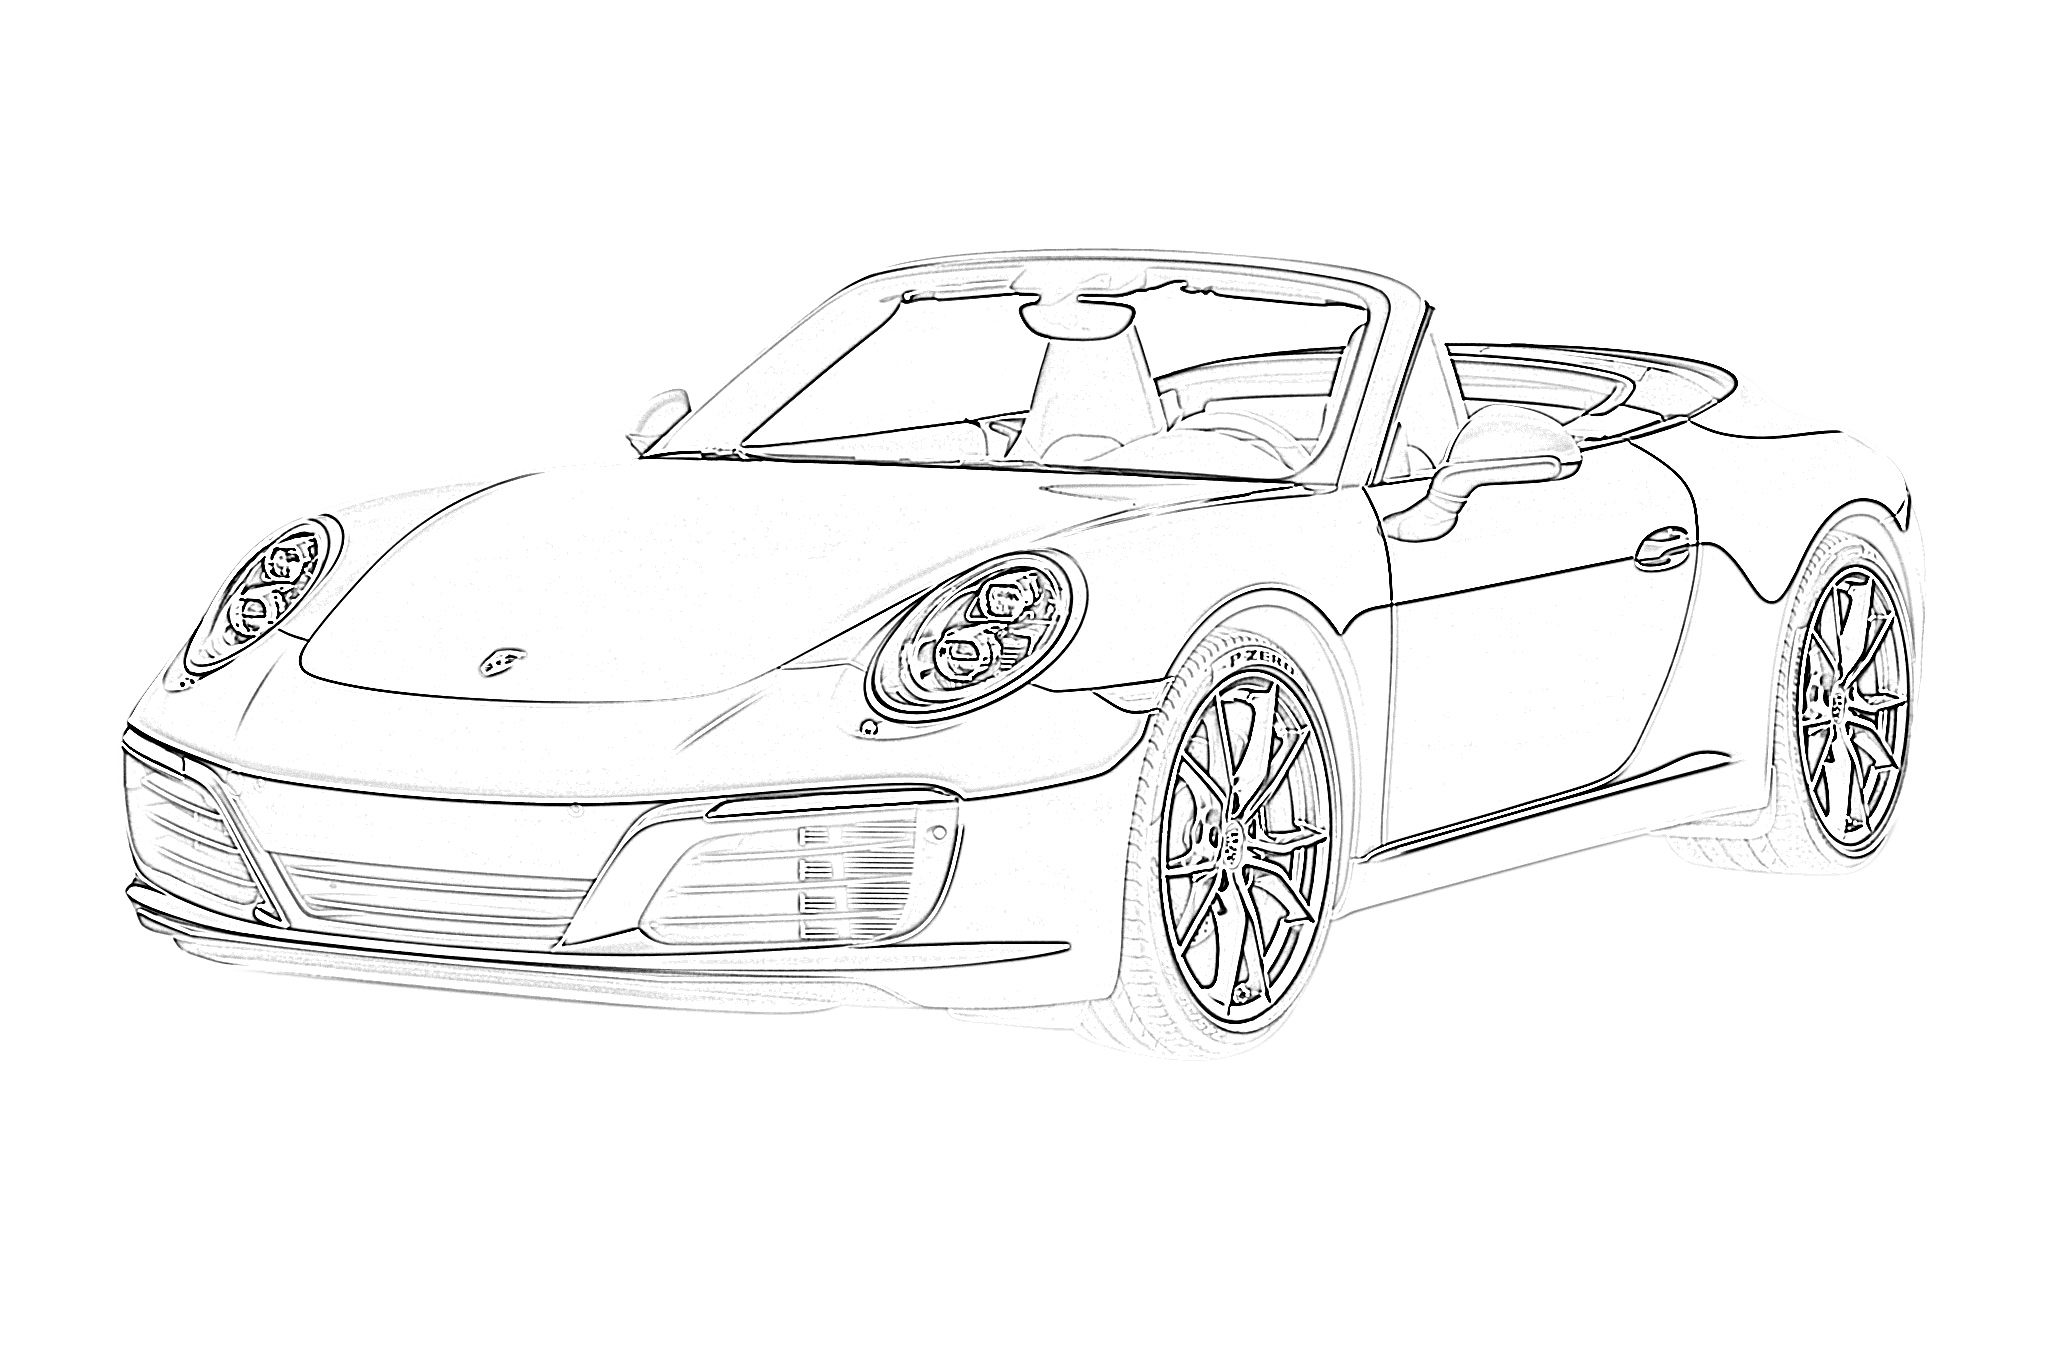 colouring in pictures of cars car coloring pages coloring kids cars pictures colouring in of